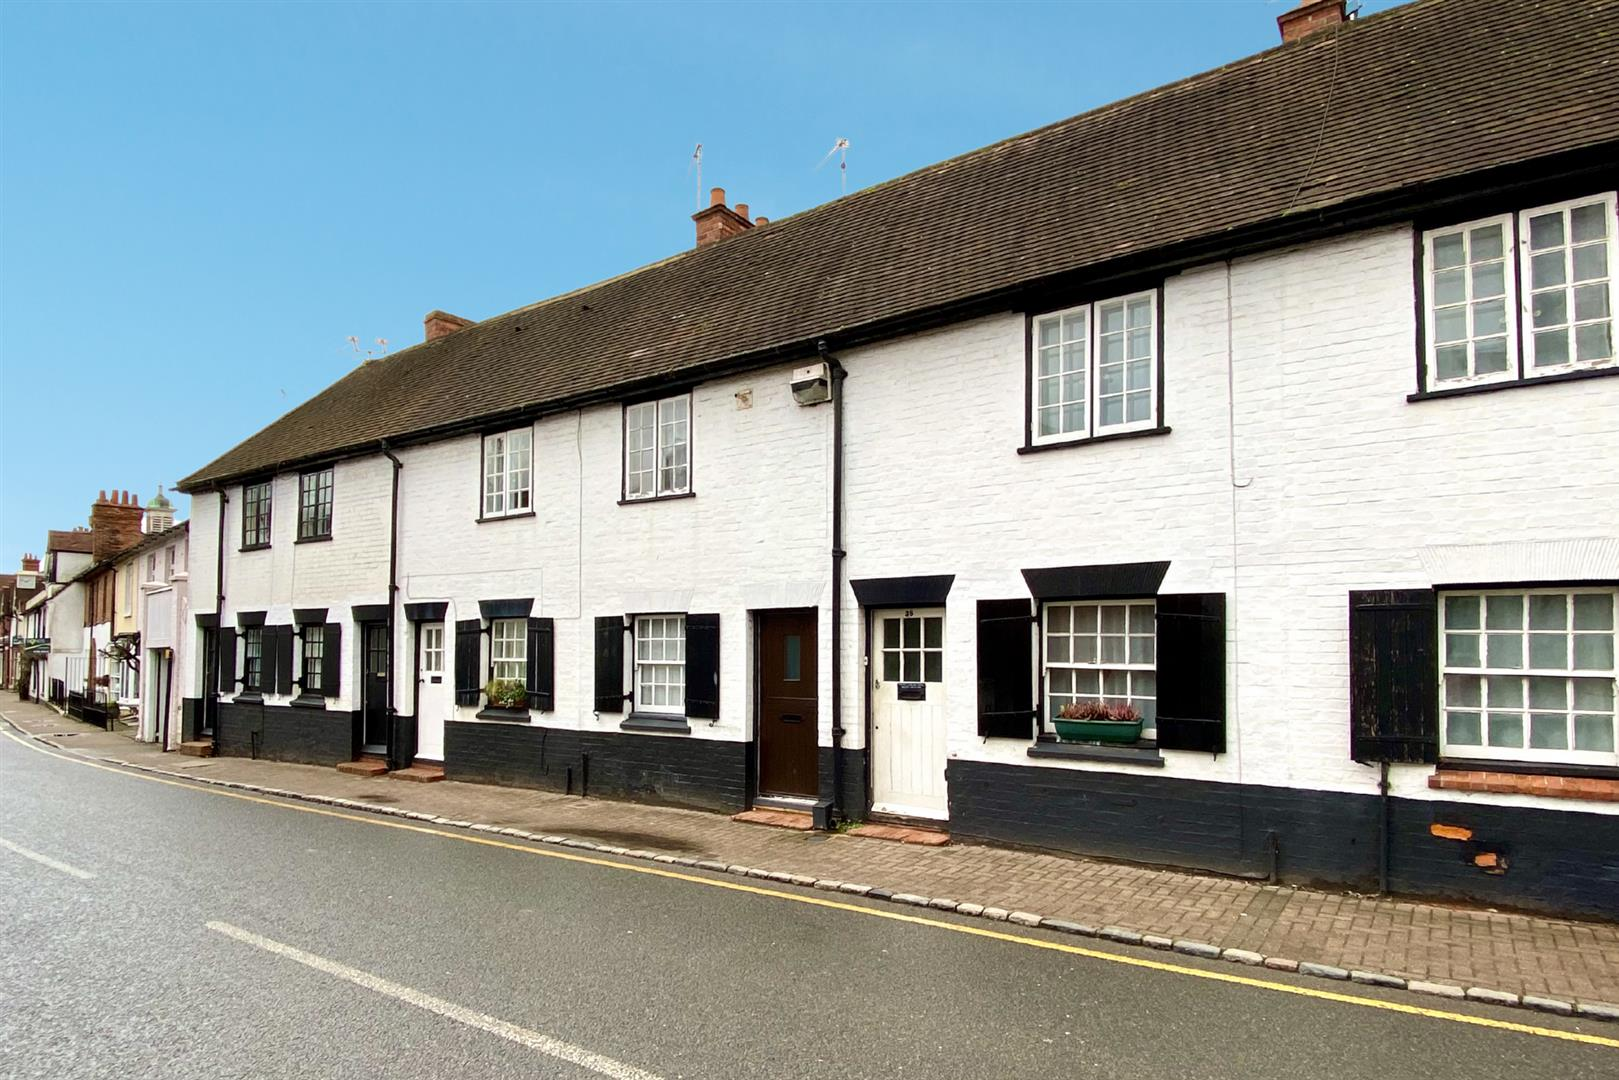 2 bed terraced for sale in Wargrave, RG10